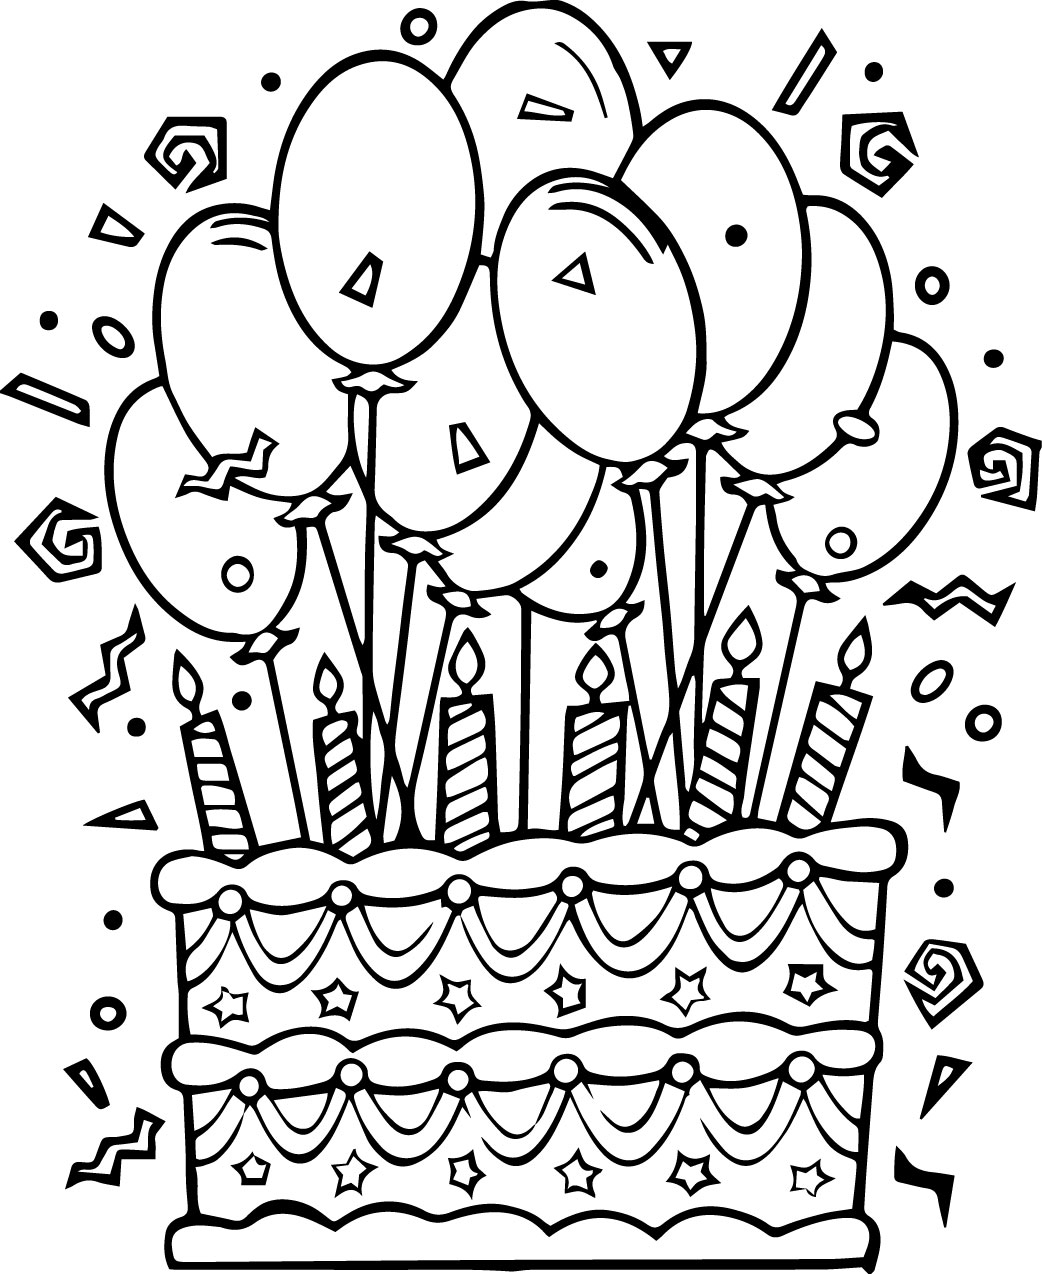 Adult Beauty Coloring Page Cake Images top balloons and pointed hat with birthday cake coloring pages gallery images